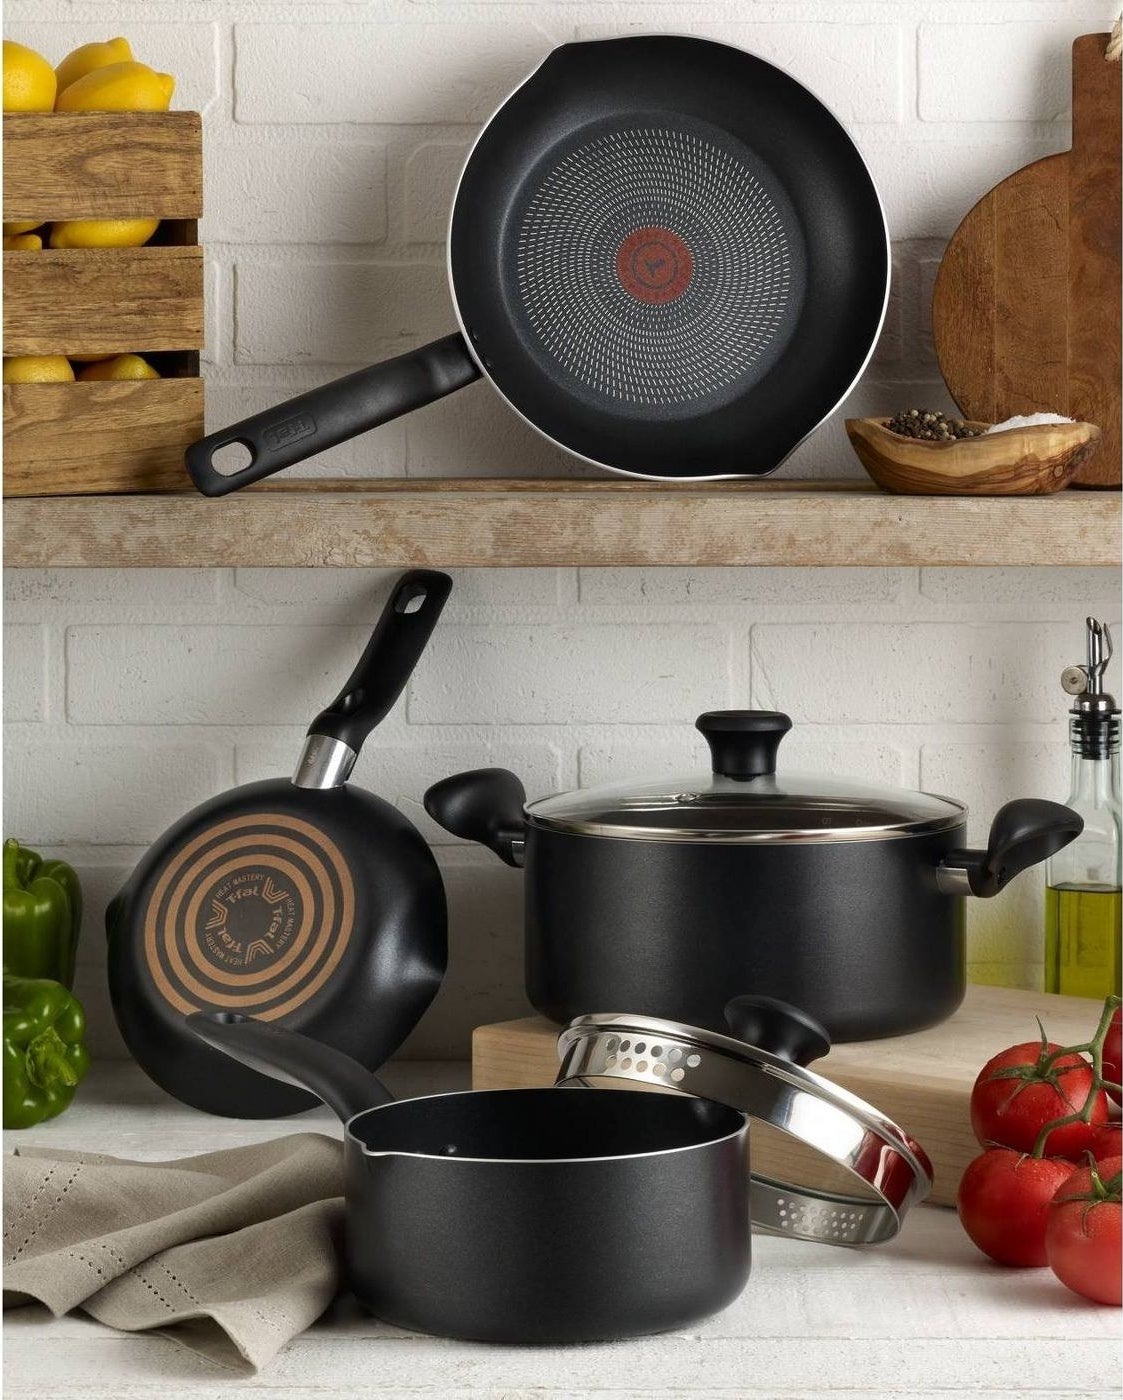 The set of pots and pans